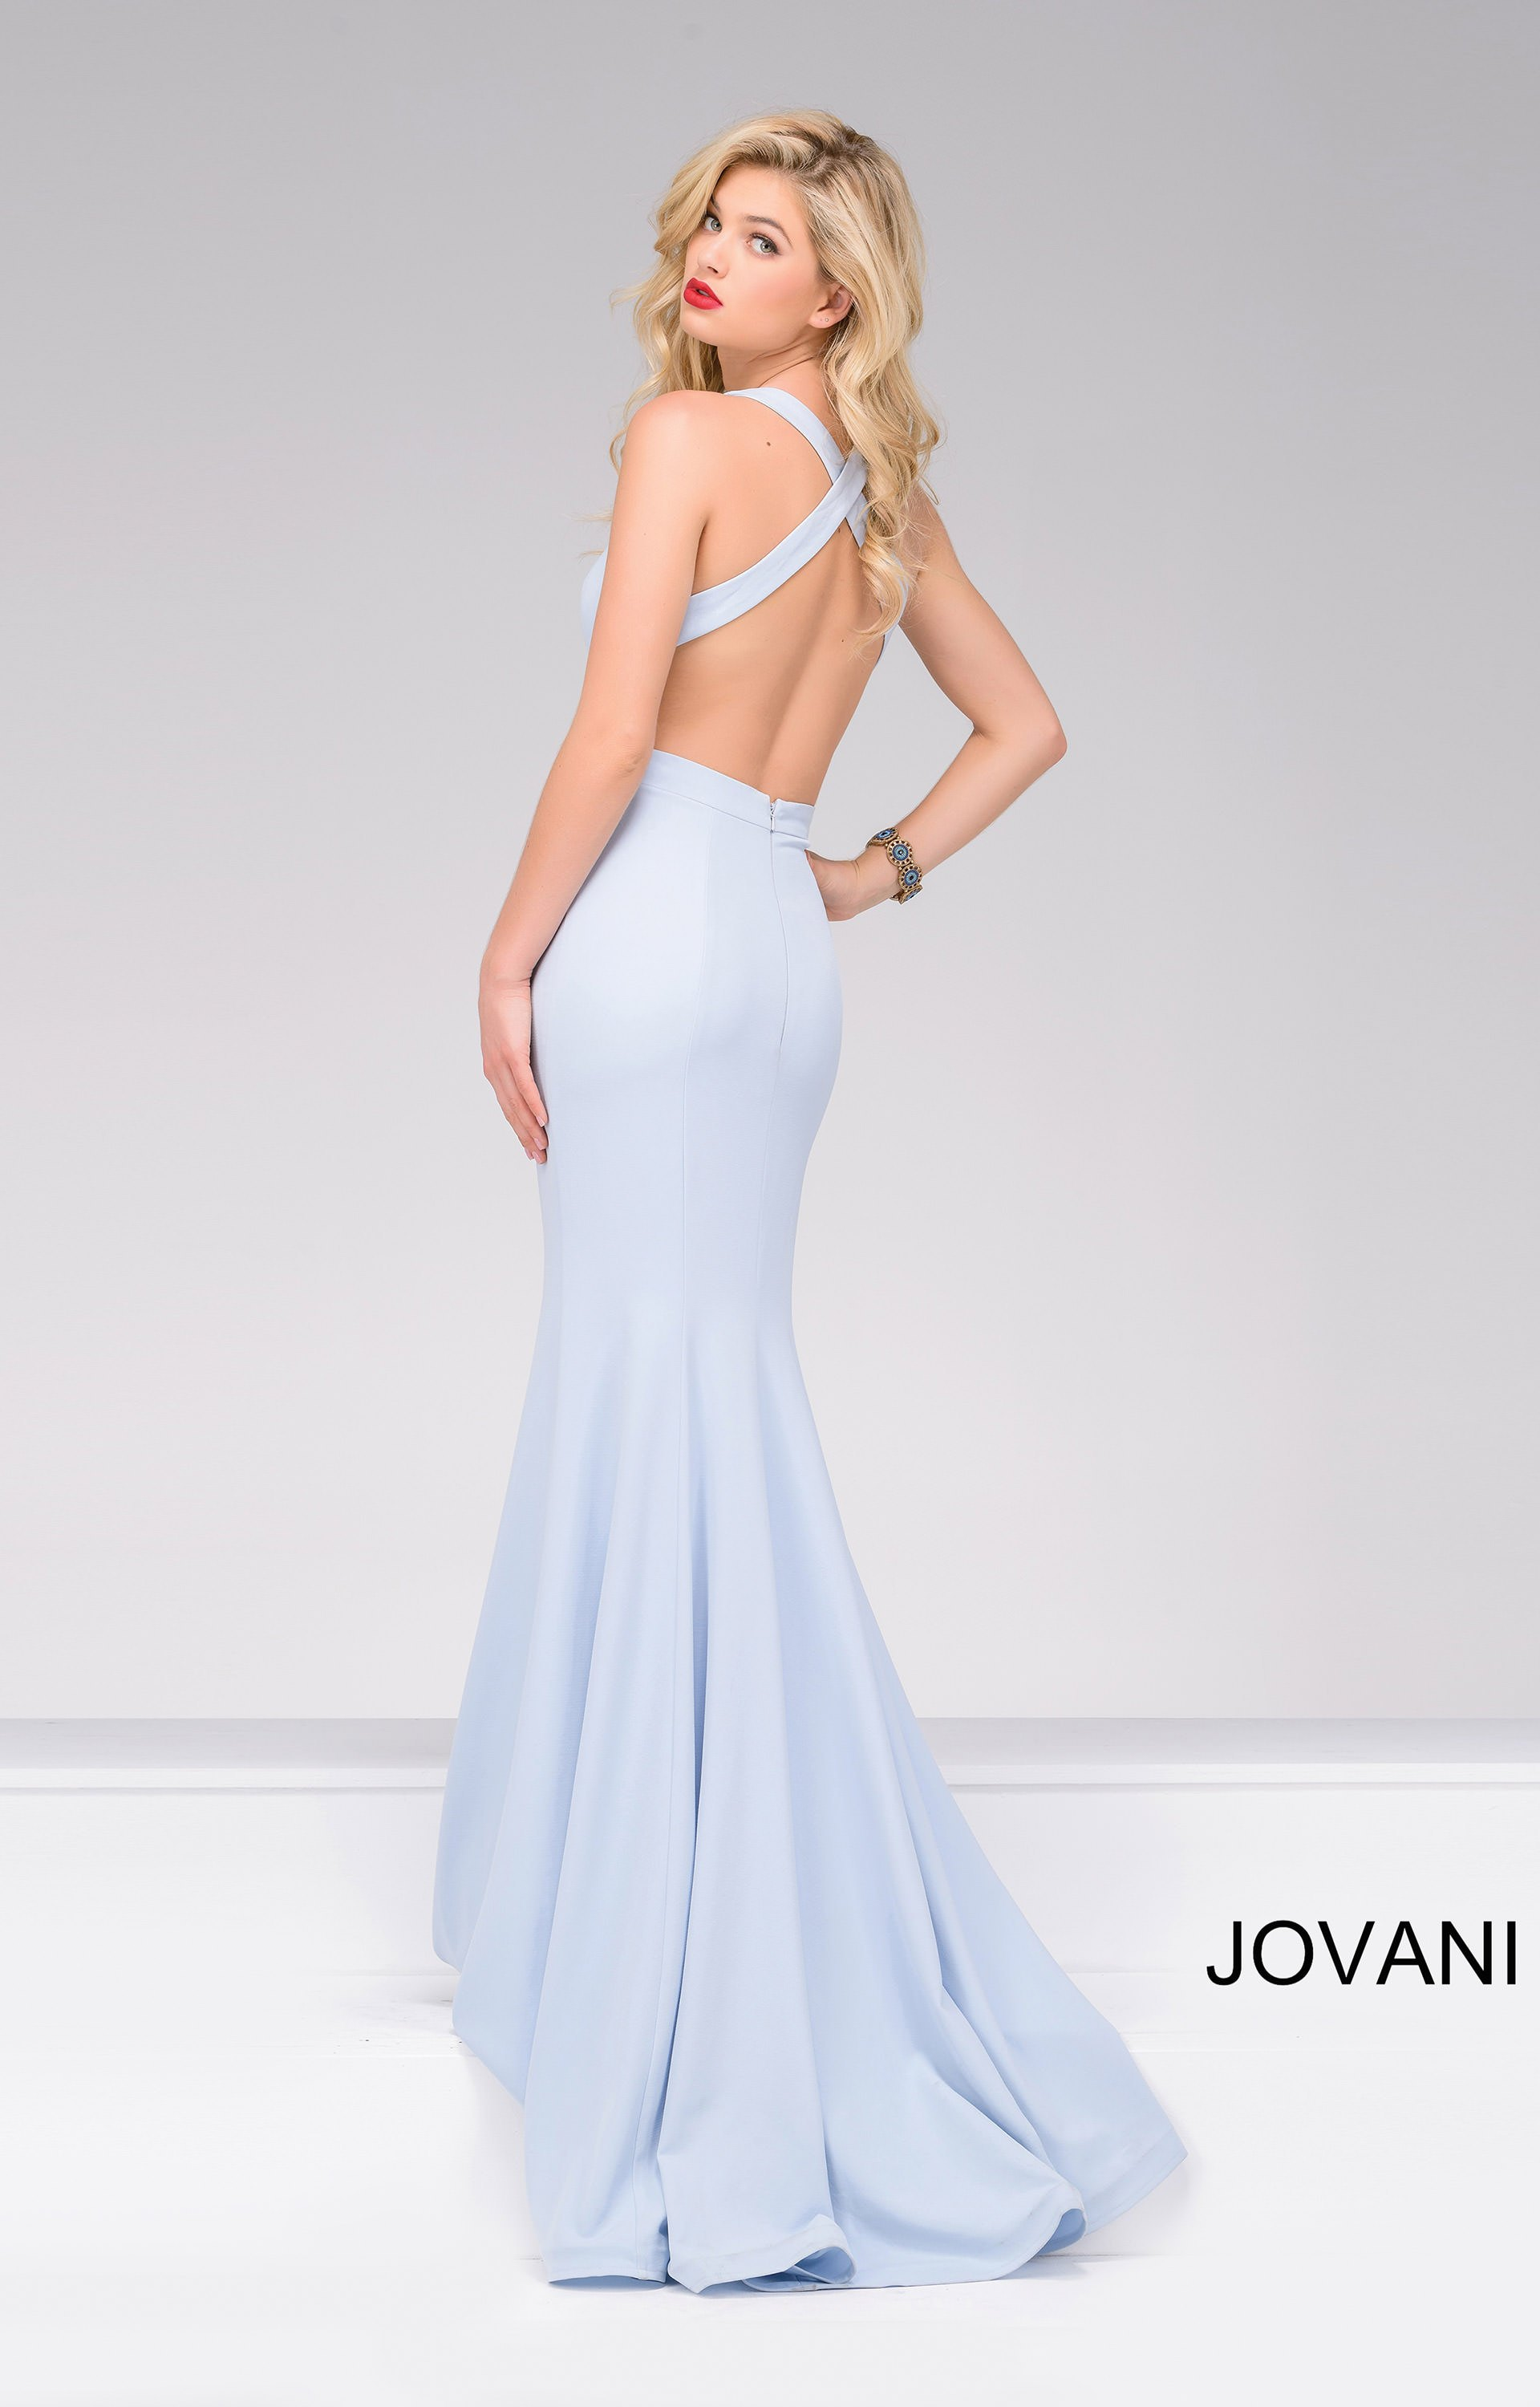 Jovani 34110 Simple No Beads Halter Fitted Open Back